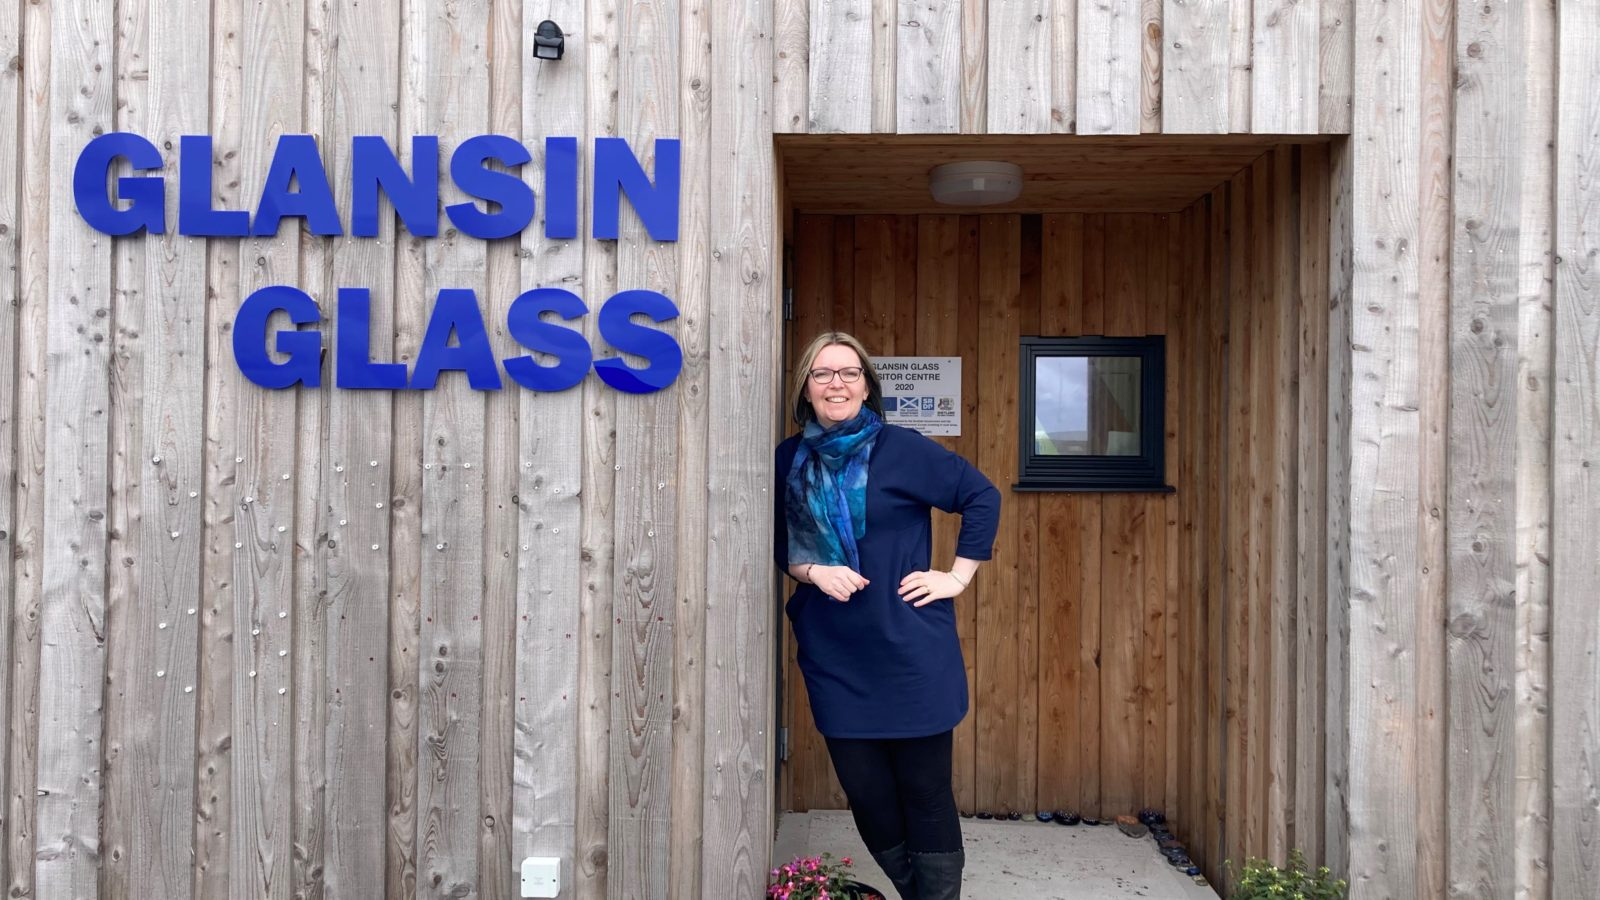 Business Gateway ensures artists' glass is full as bespoke studio and visitor centre opens to high demand